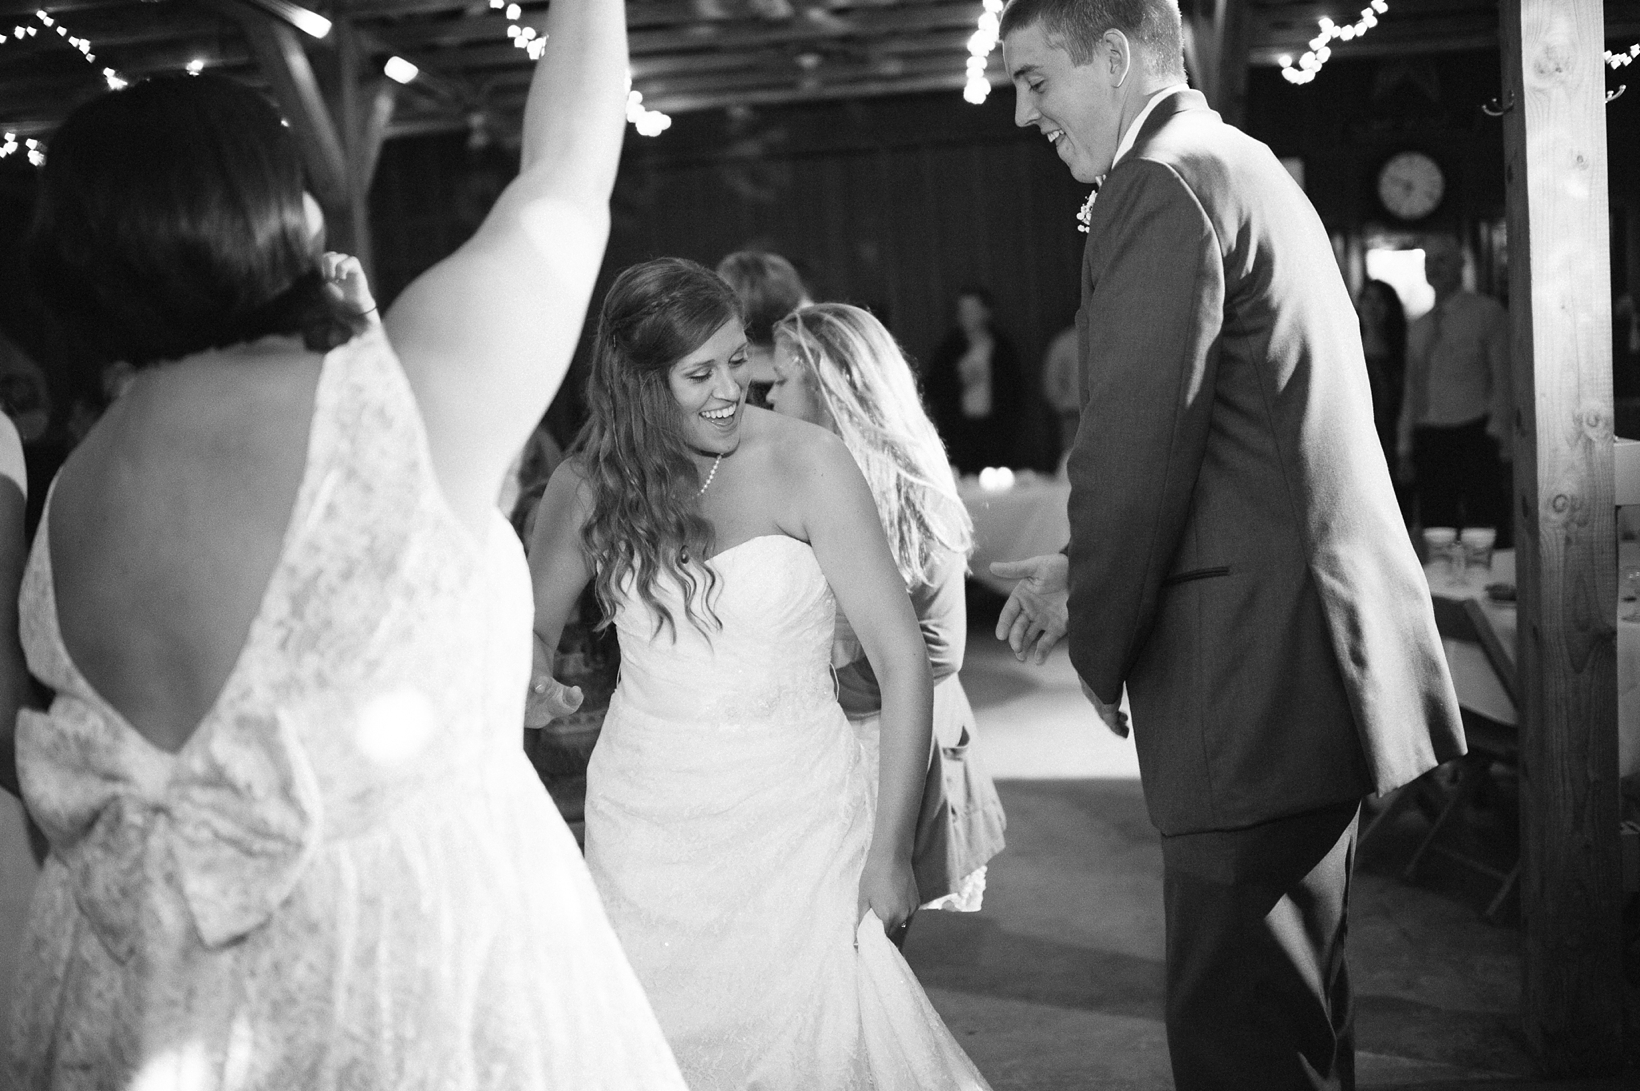 richmondvirginiaweddingphotographer-217